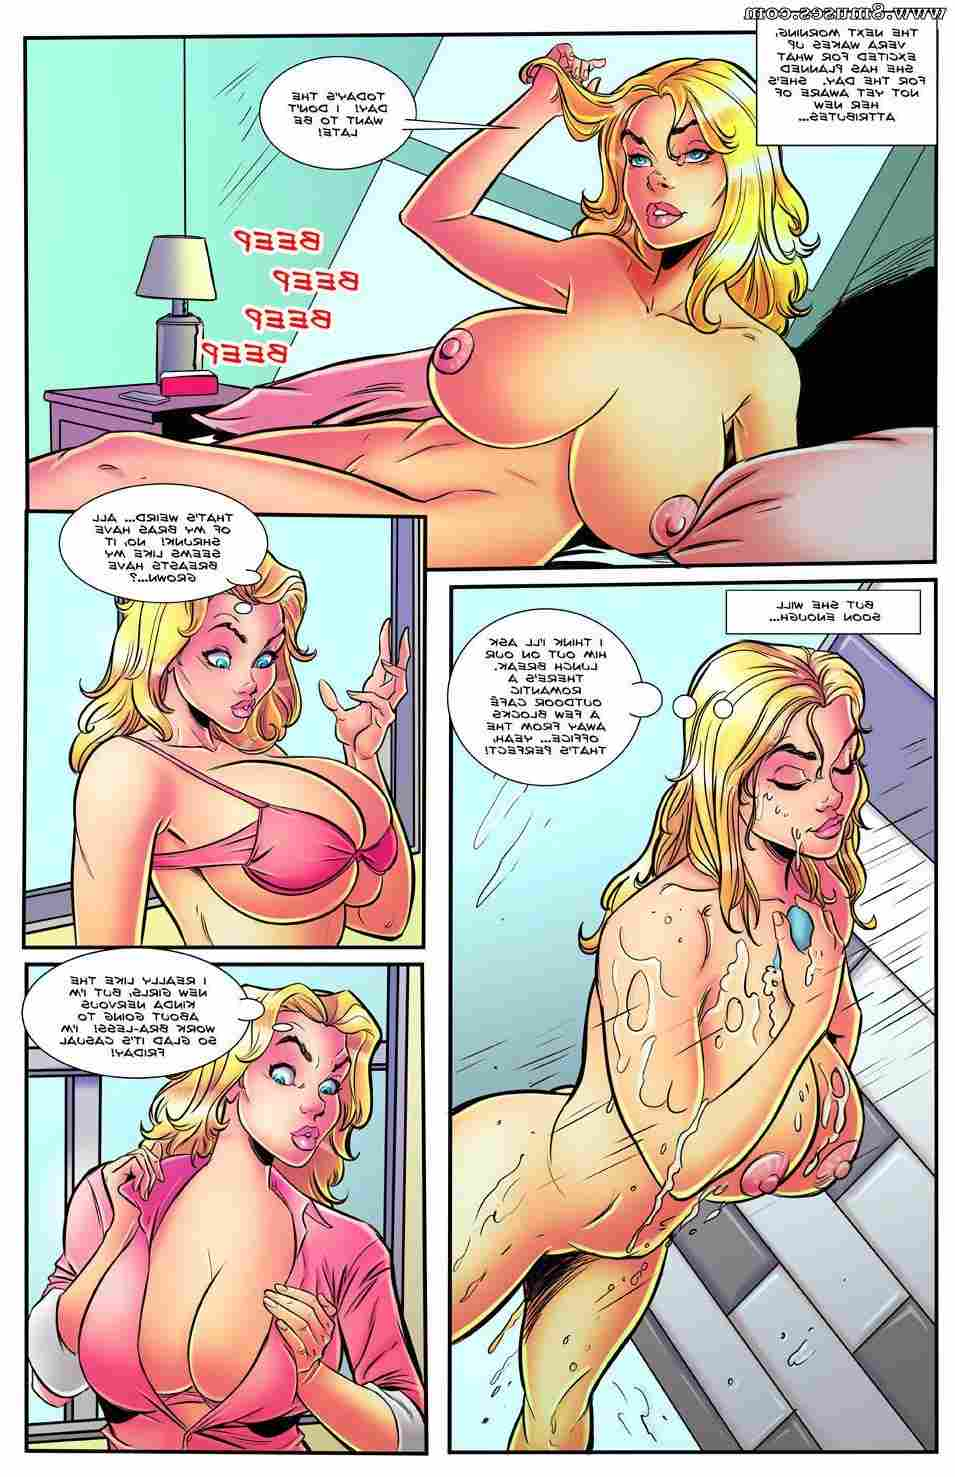 BE-Story-Club-Comics/Massive Massive__8muses_-_Sex_and_Porn_Comics_8.jpg